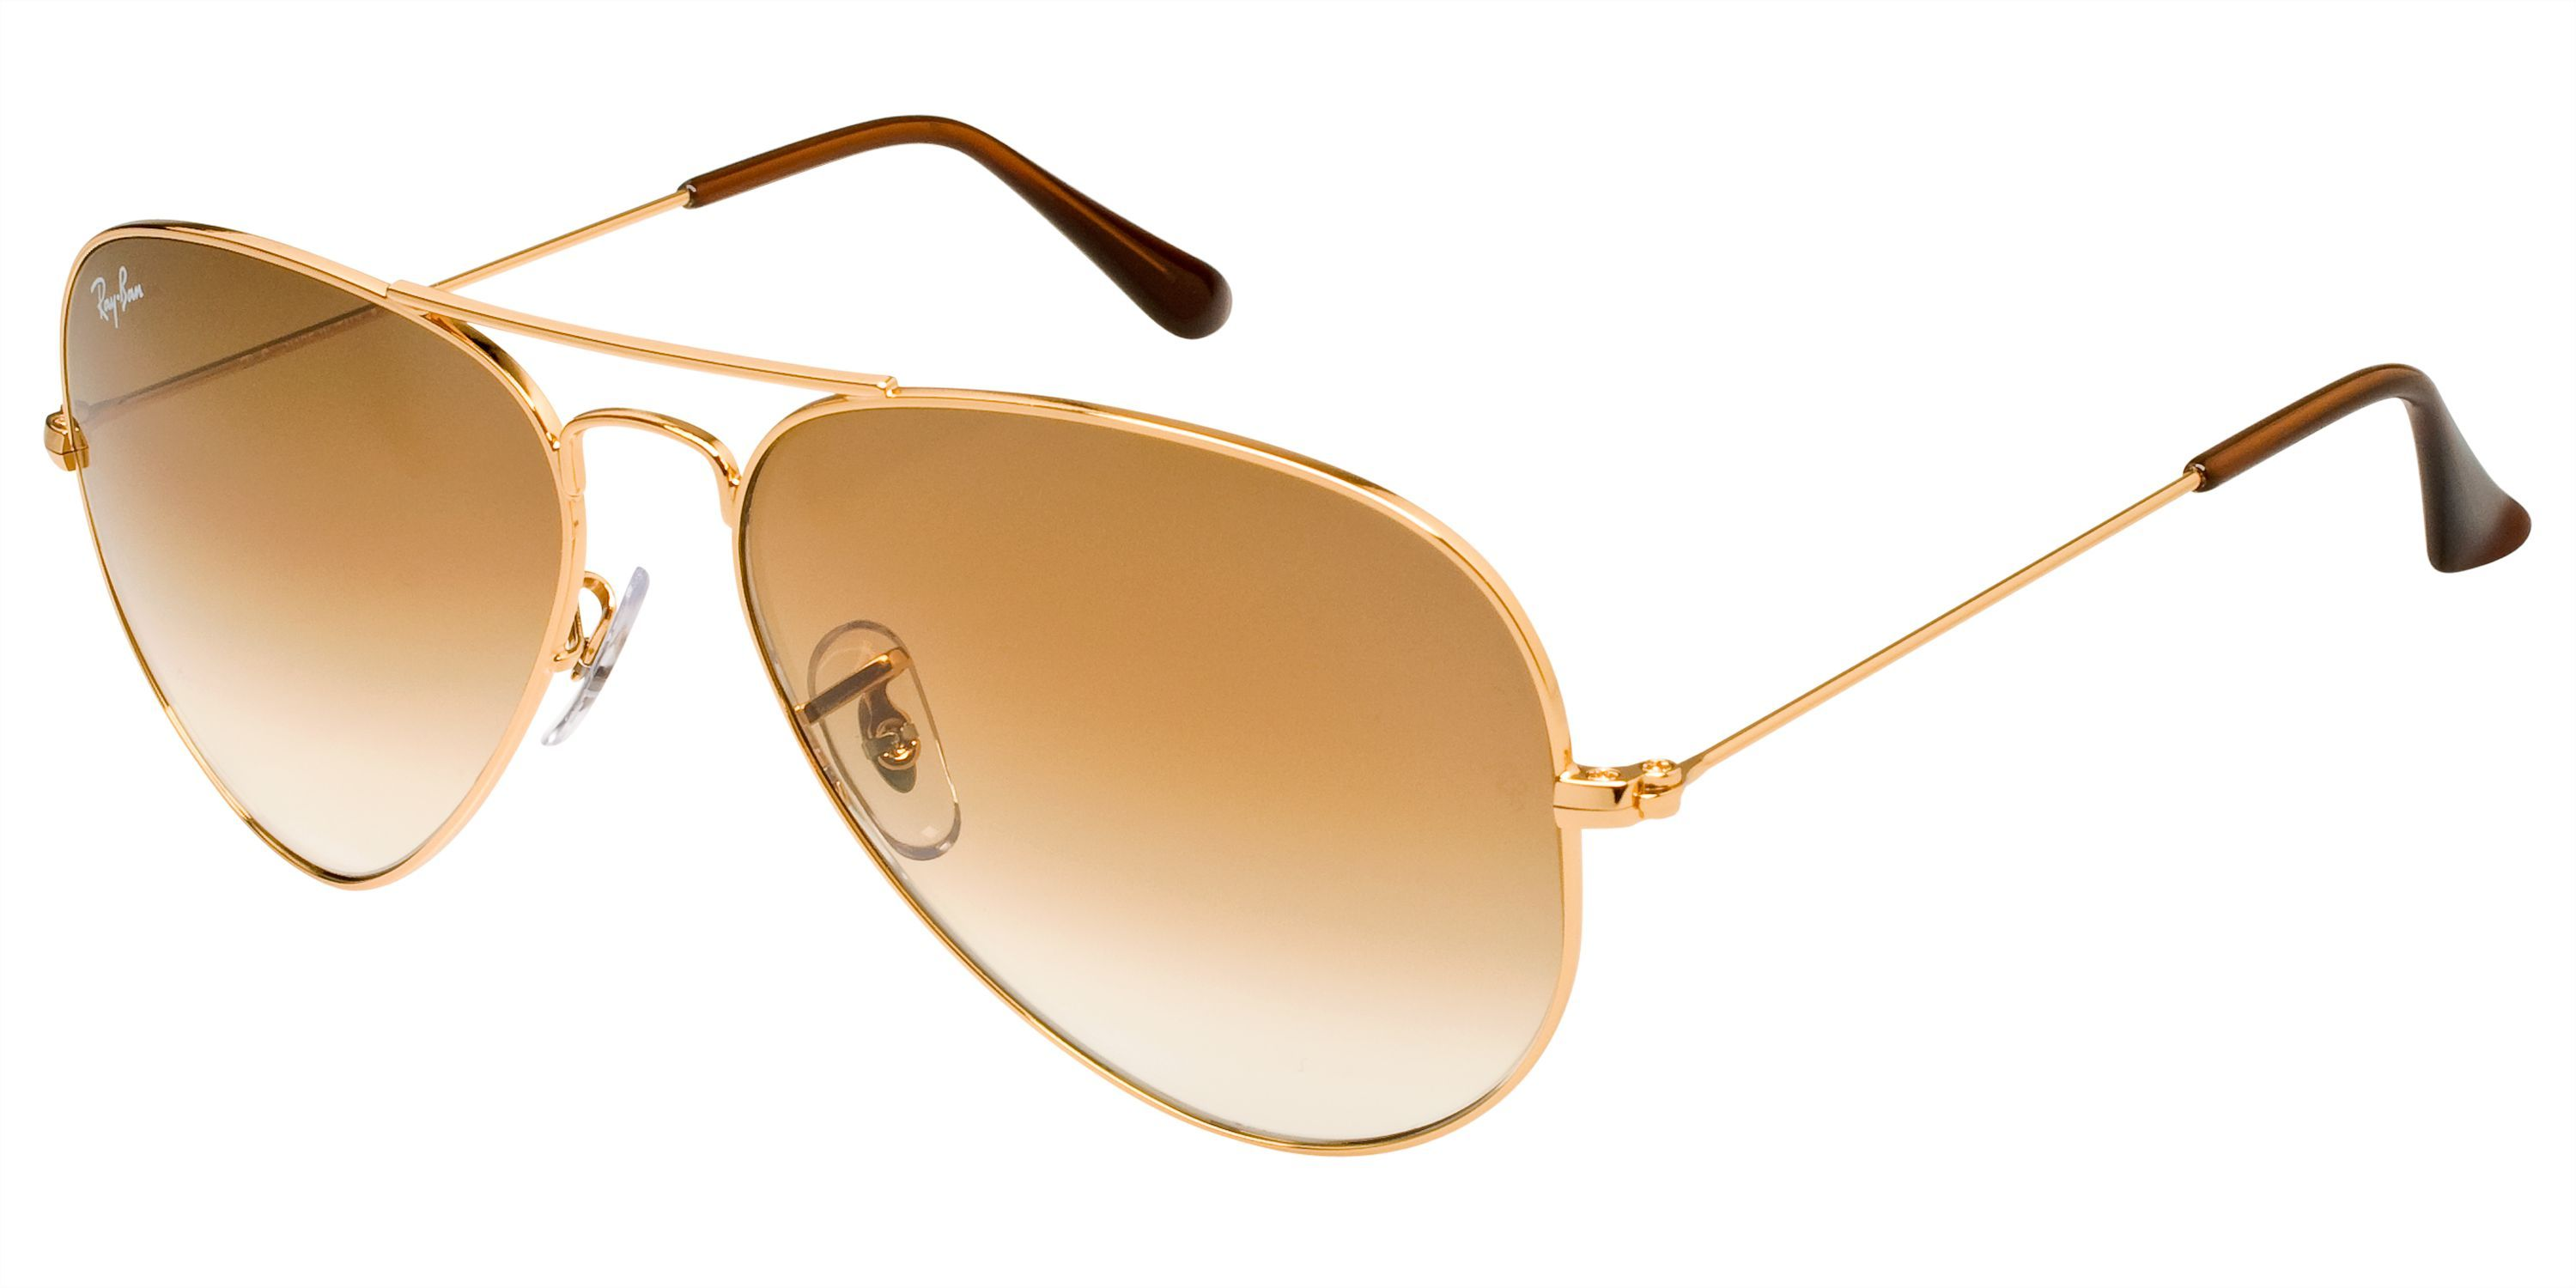 RAY-BAN RB3025 58 AVIATOR - Repin your favorite frame and win a ...